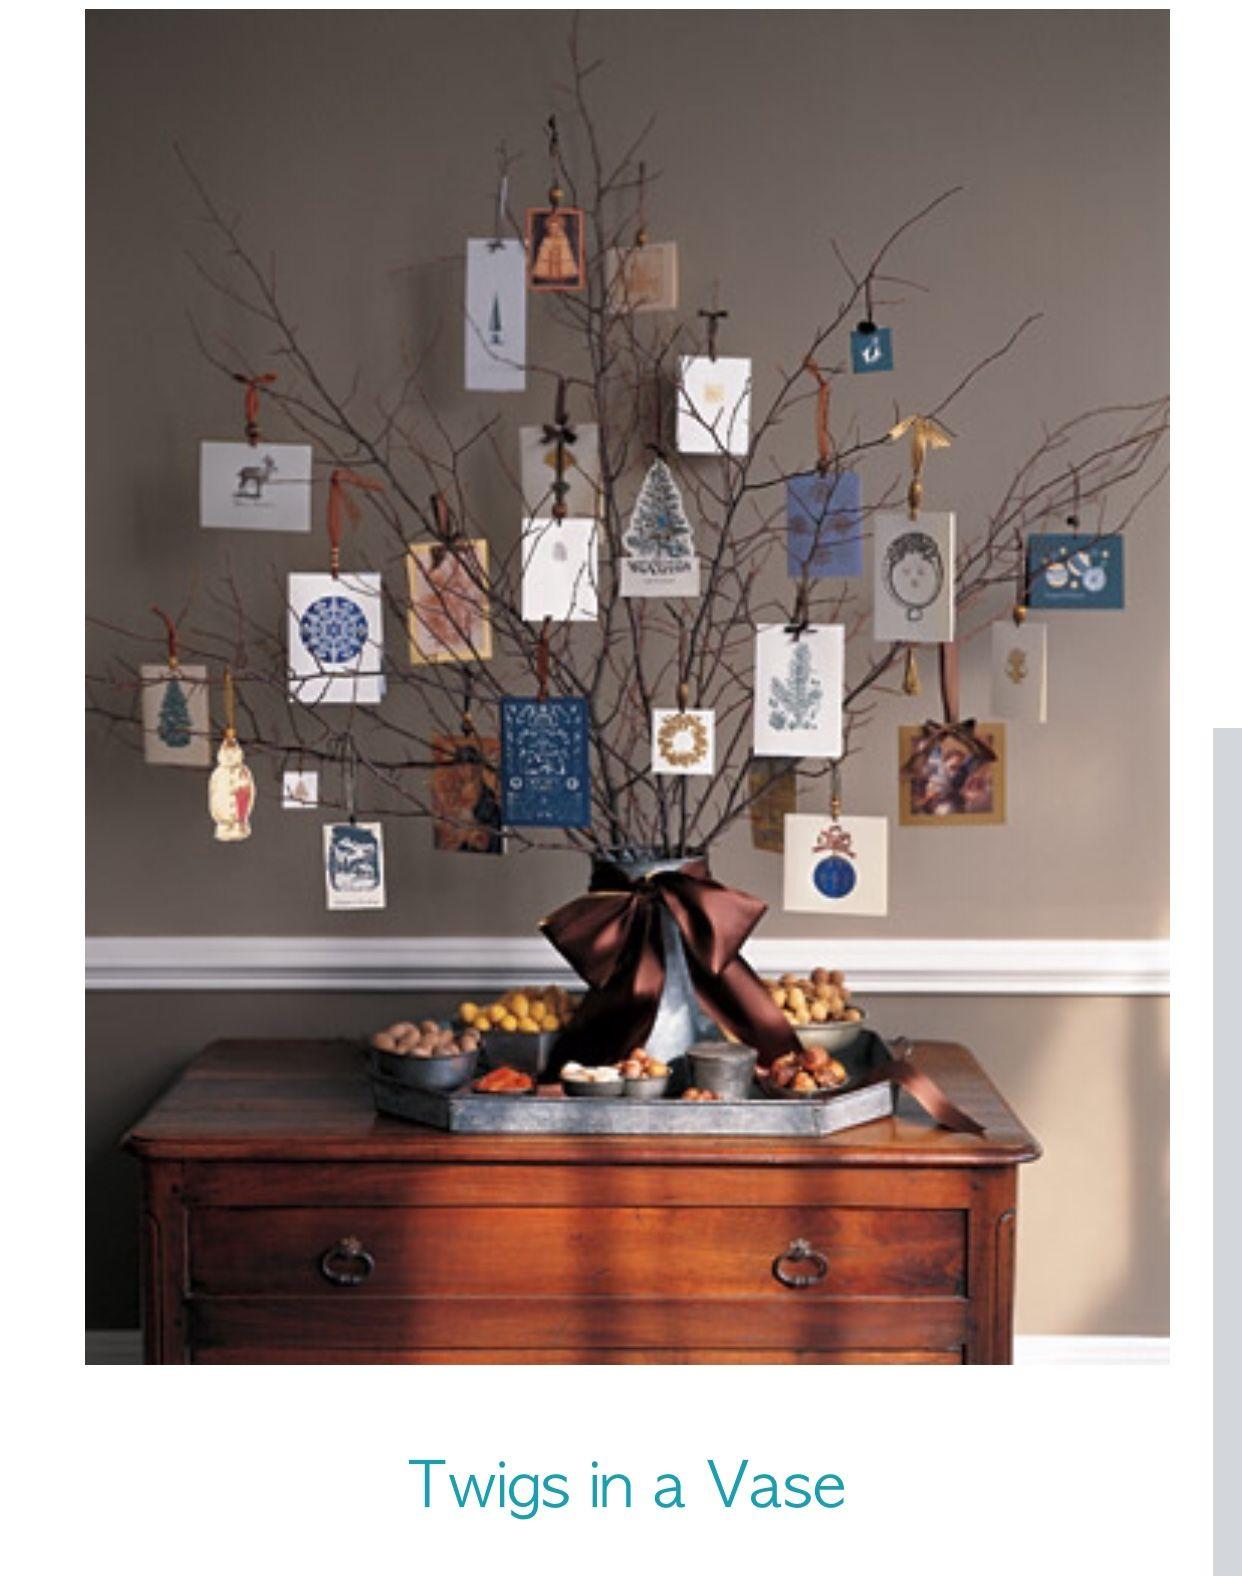 Christmas Card Tree Display The Cards You Receive From Family And Friends  By Hanging Them Like Ornaments From Winter Berry Branches.